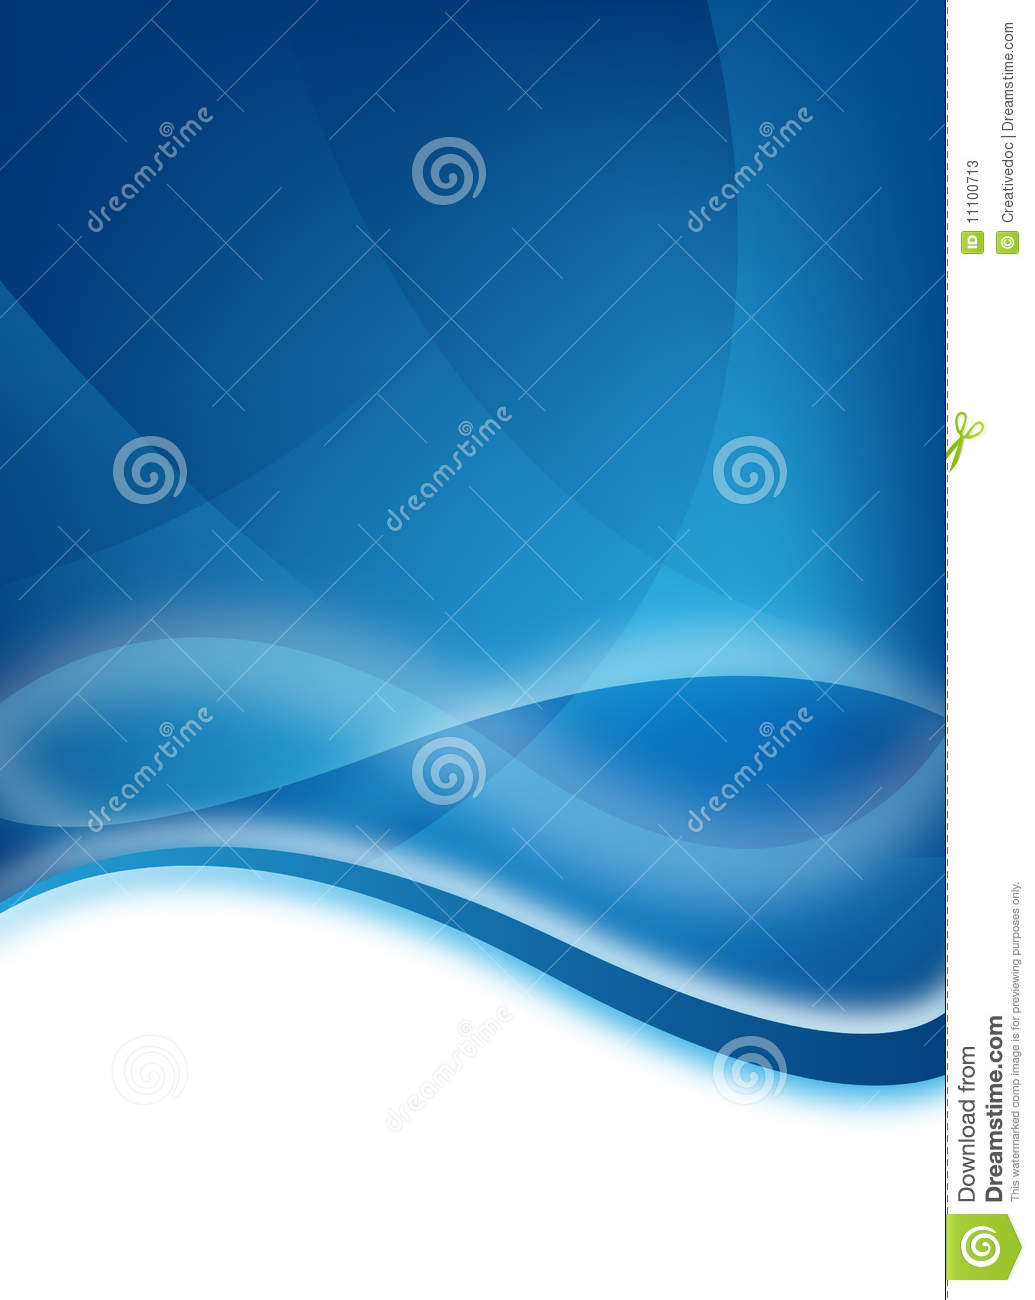 Blue Business Flyer Stock Photos - Image: 11100713